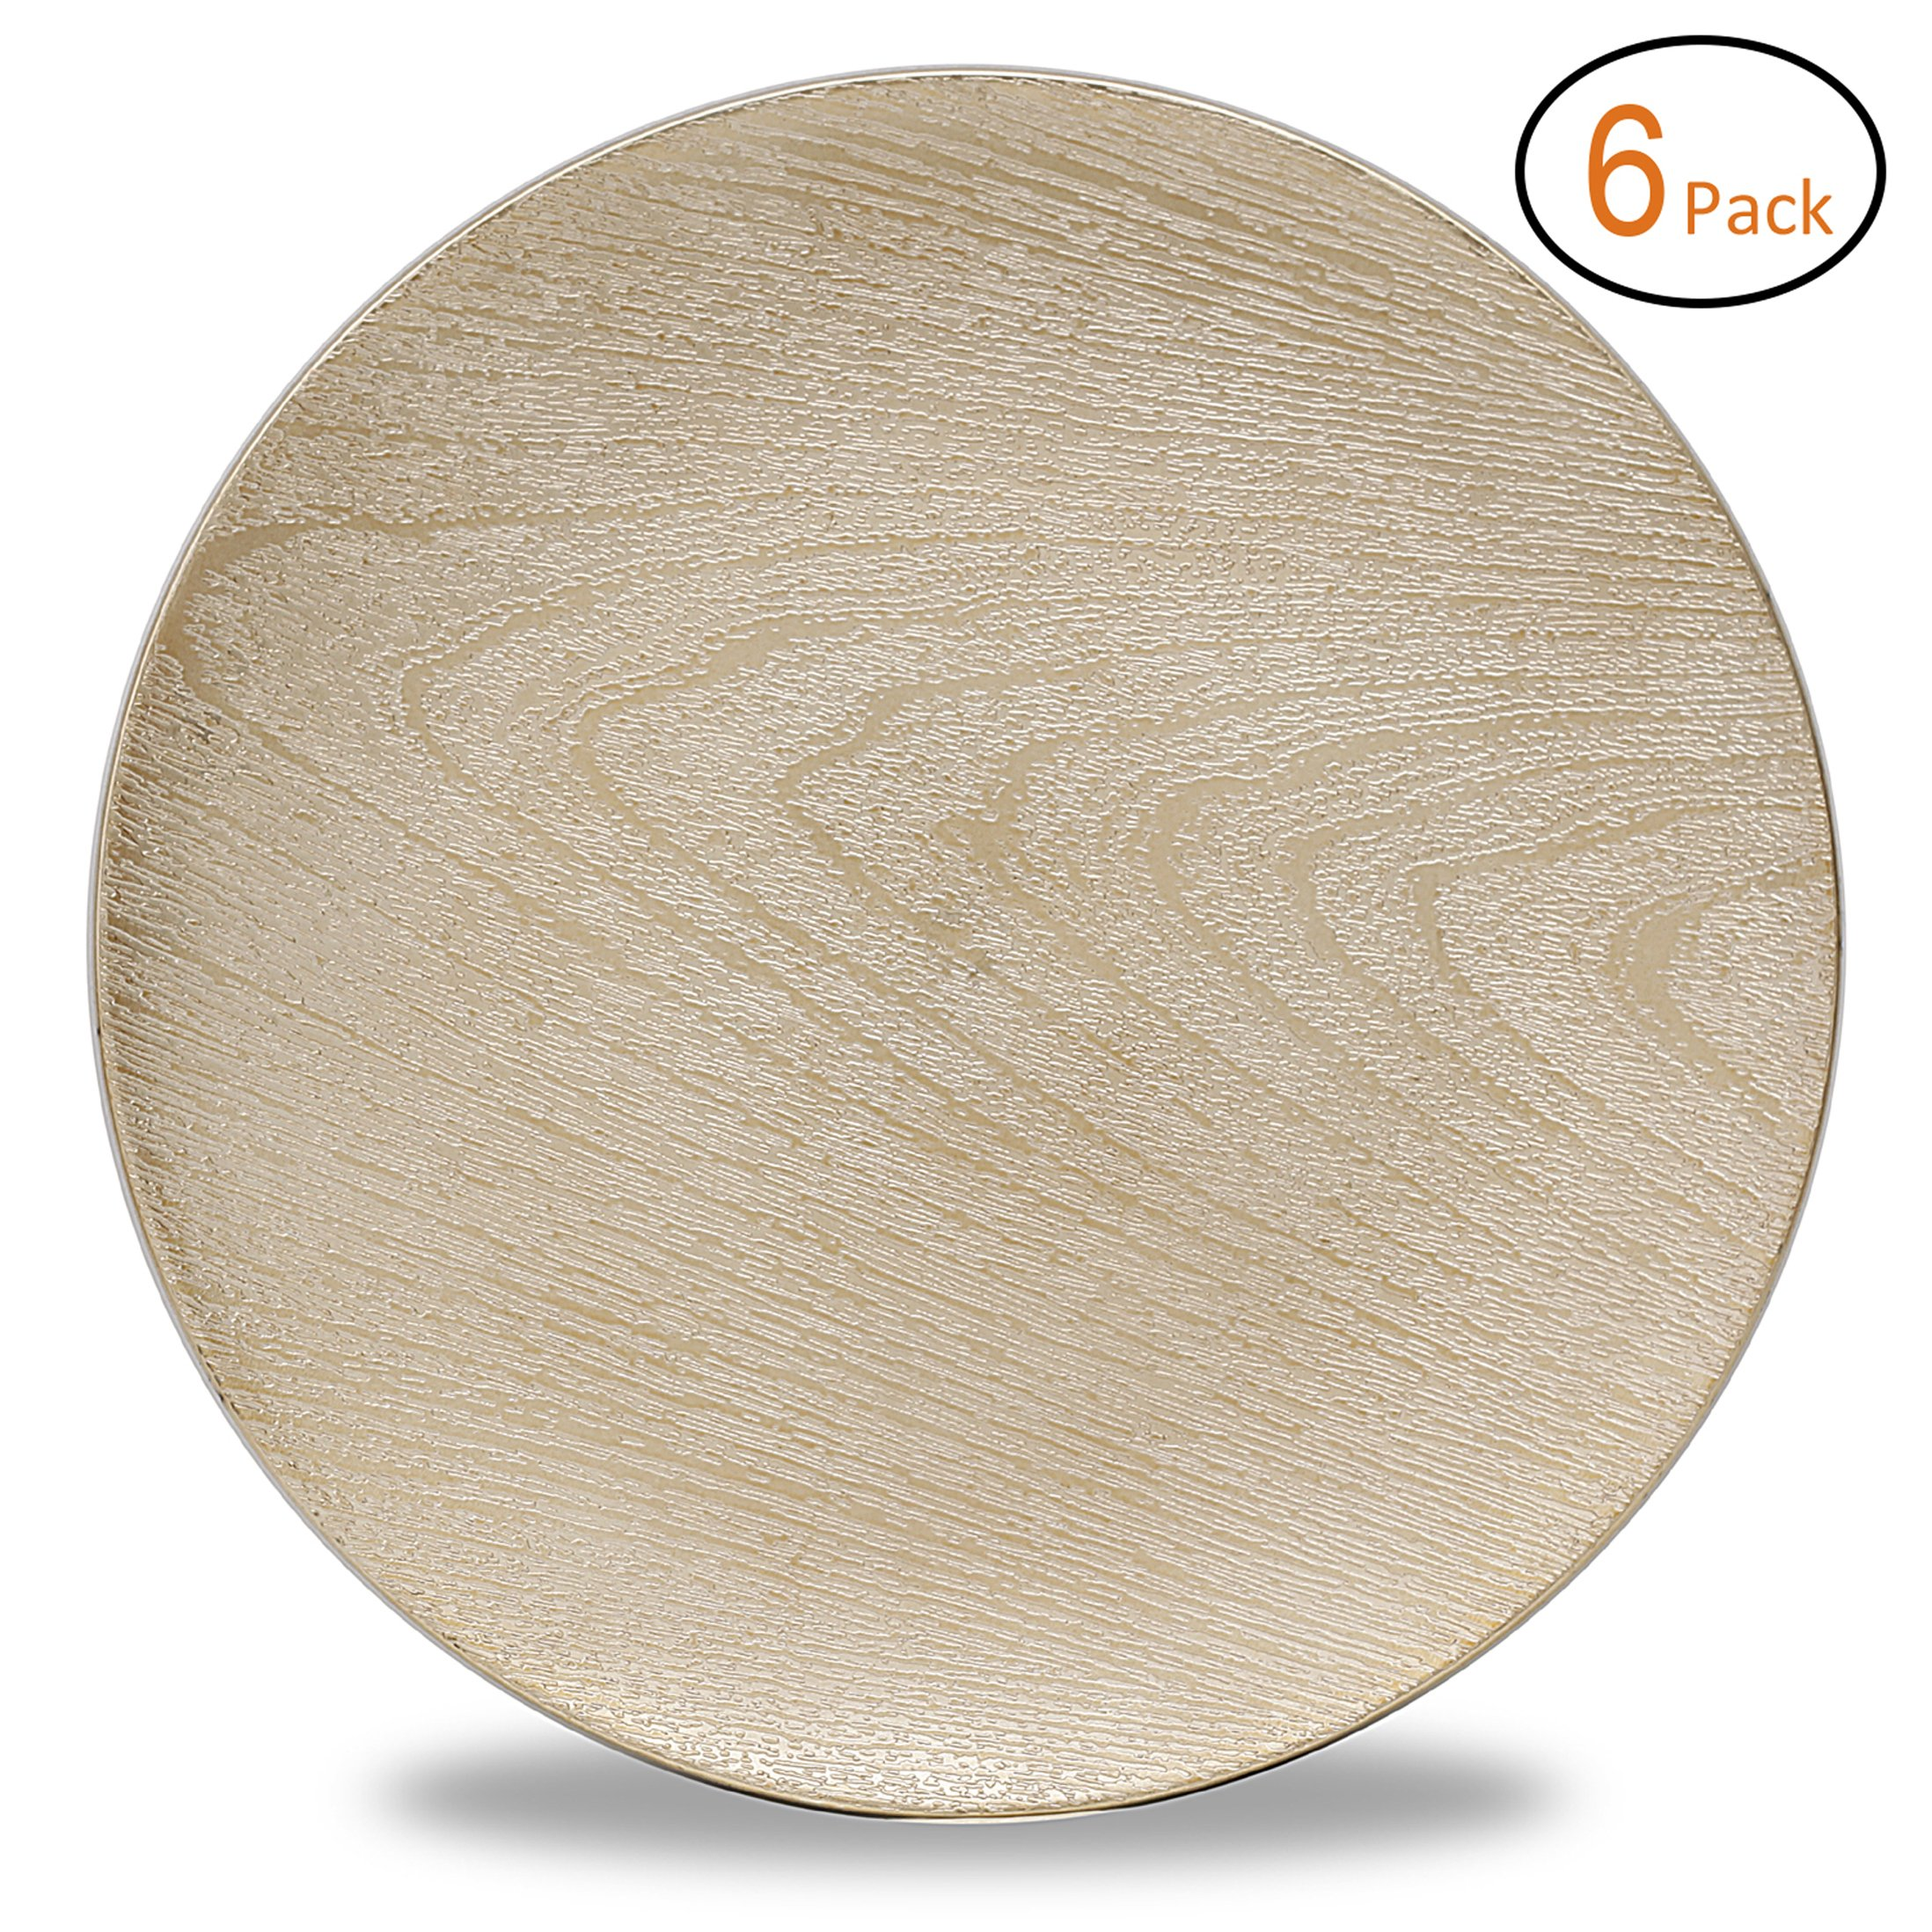 Fantastic:)™ Round 13Inch Plastic Charger Plates with Eletroplating Finish (6, Wood Gold)